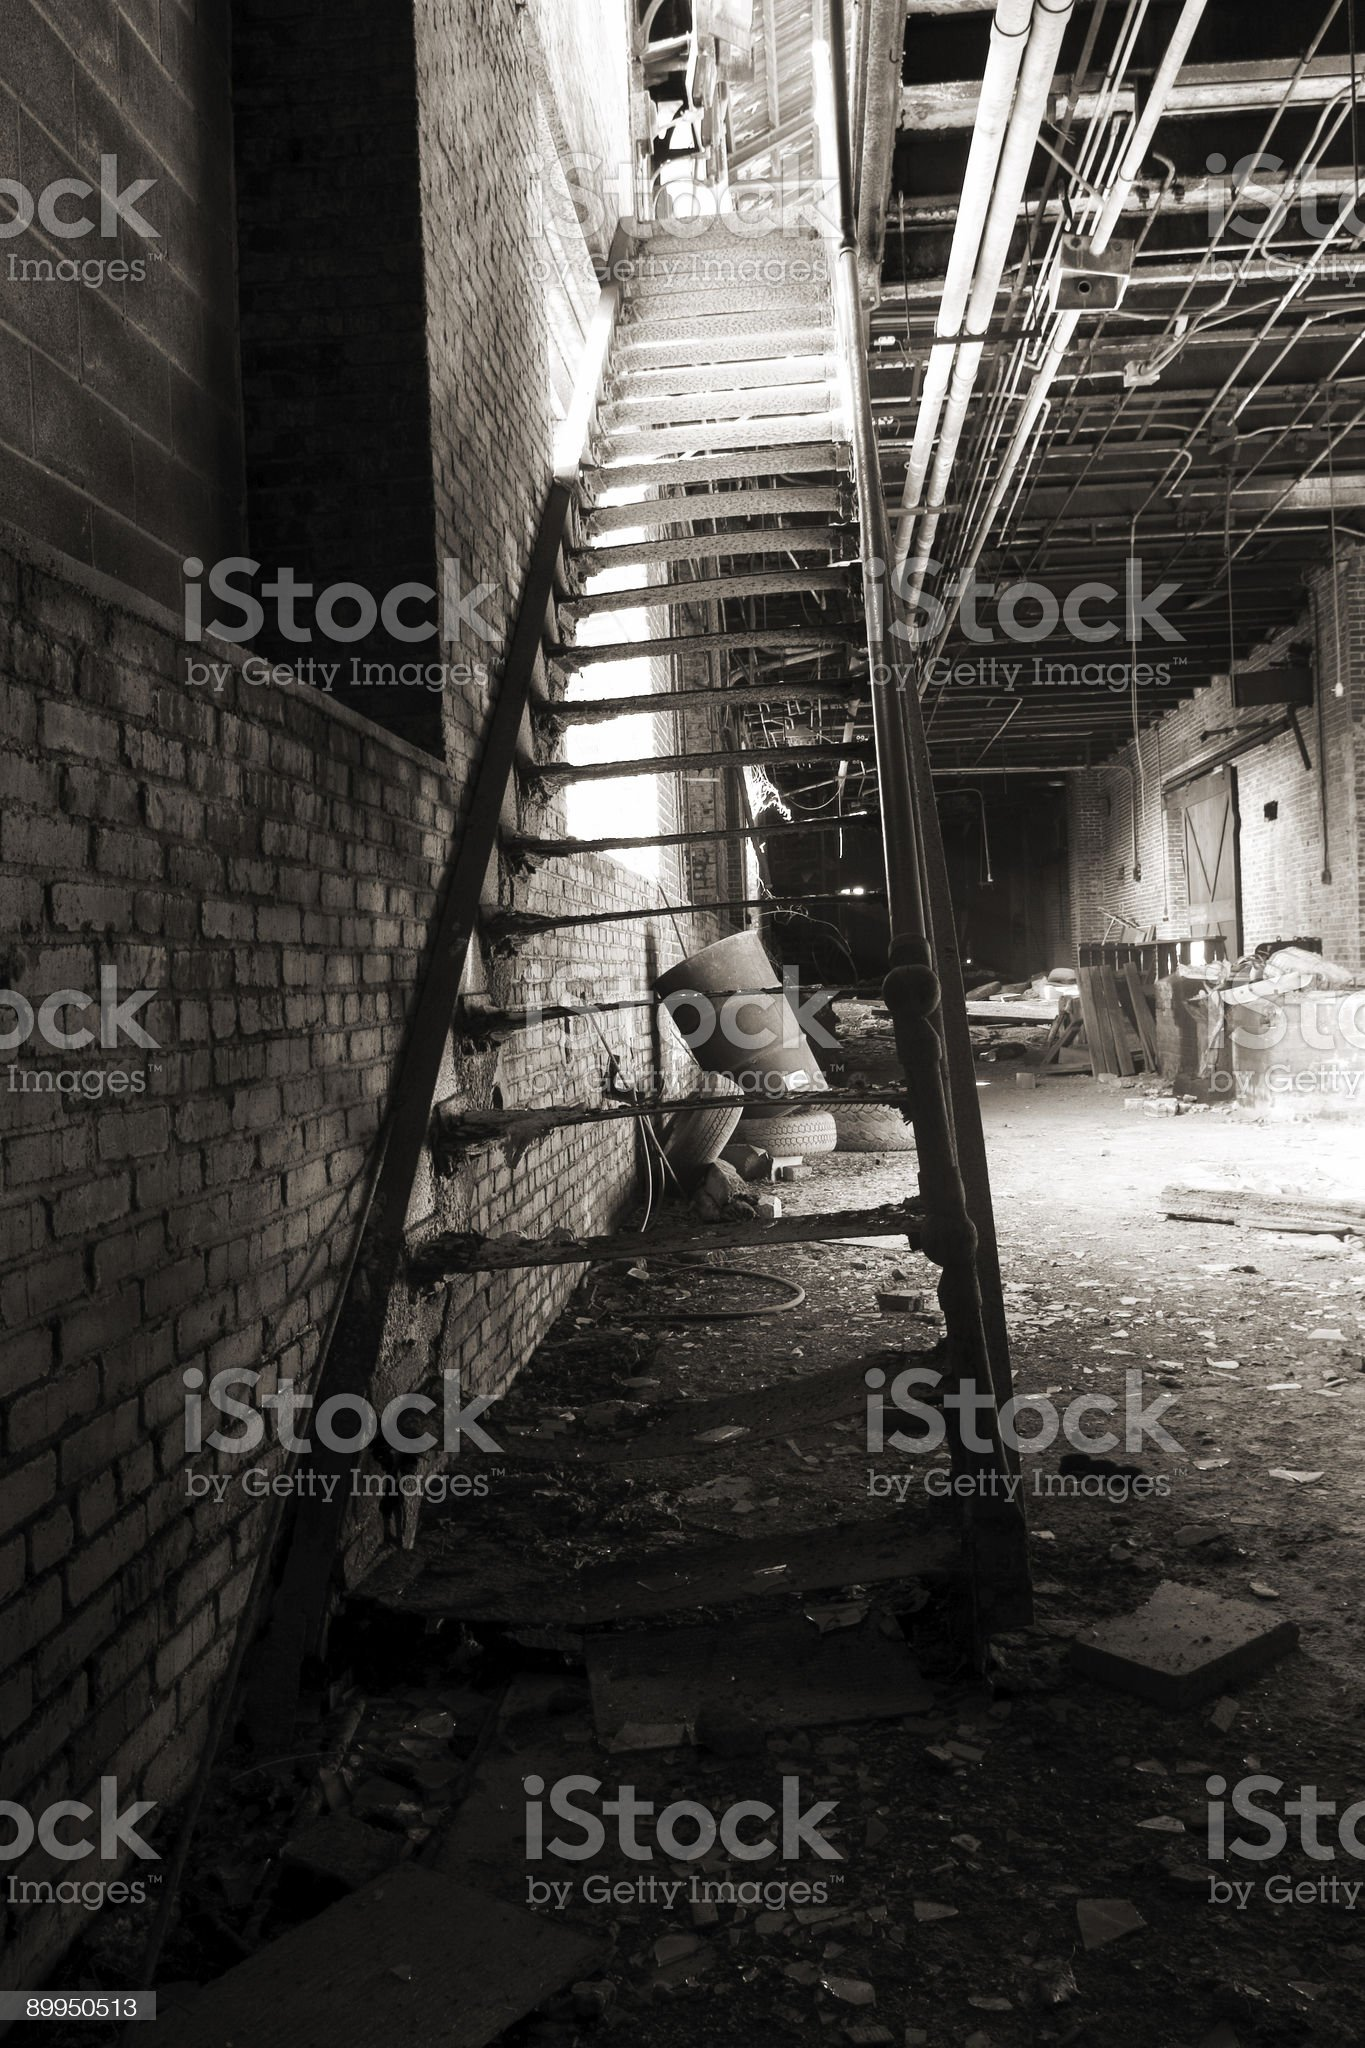 Abandoned Stairs royalty-free stock photo